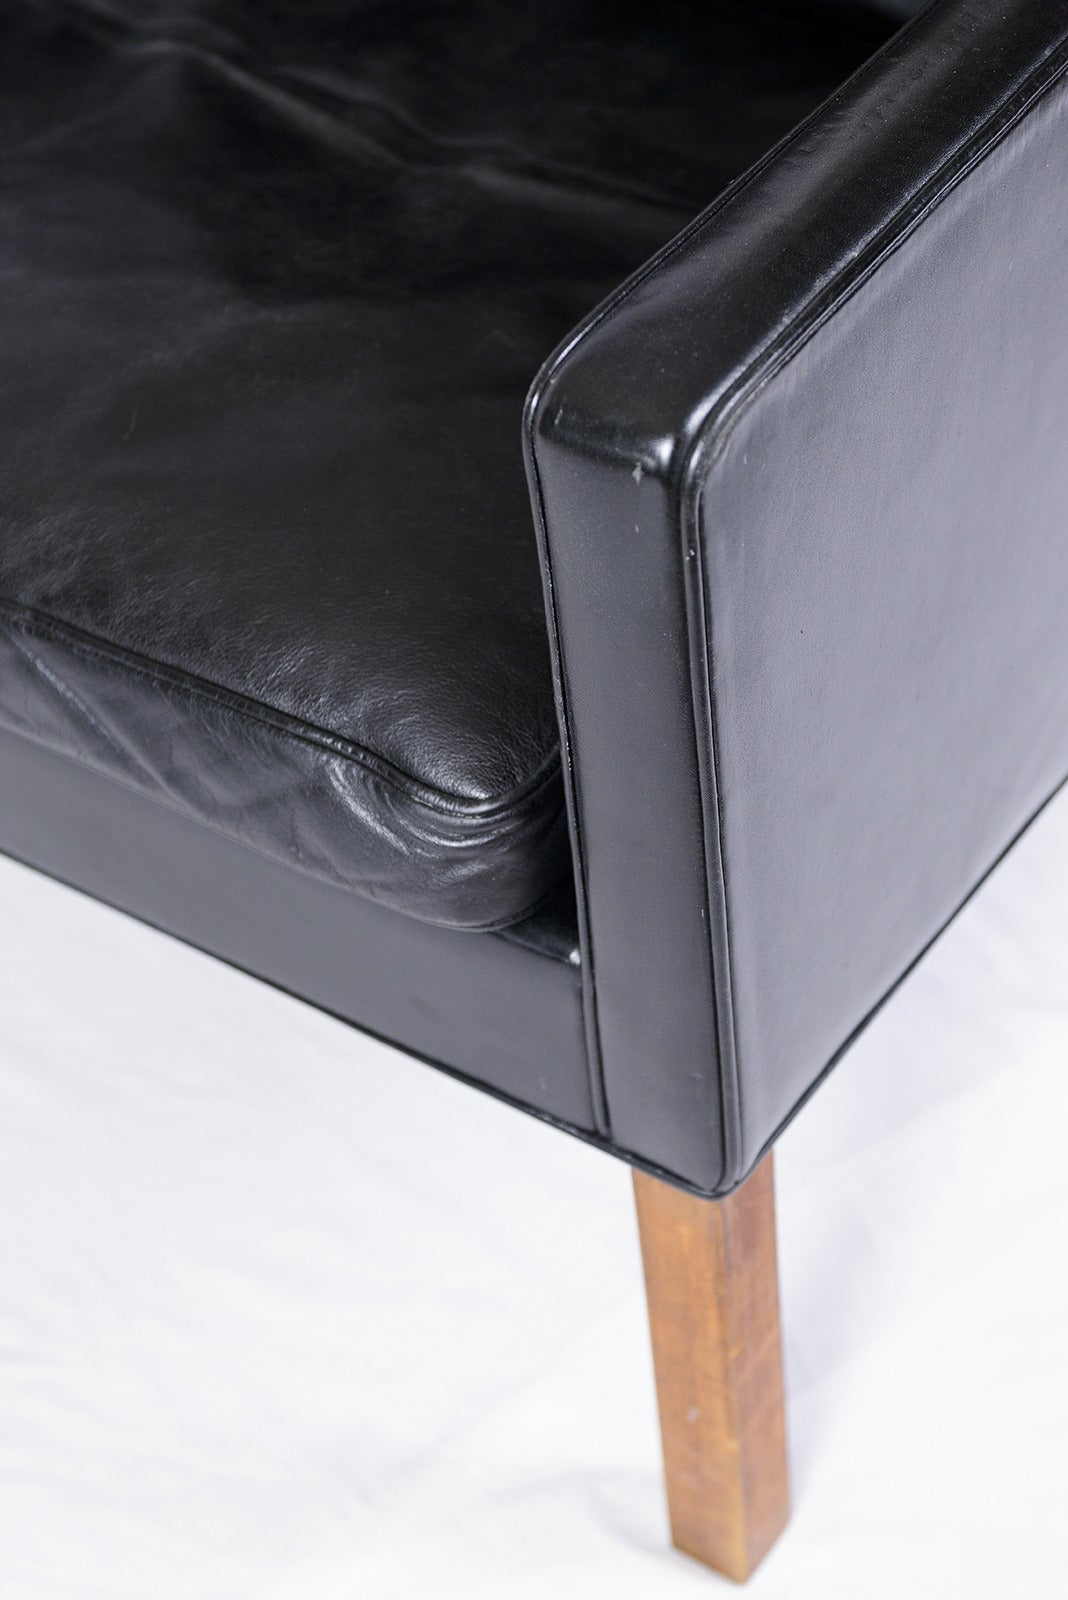 borge mogensen sofa model 2209 rugs to go with chocolate brown børge #2209 three-seat leather at 1stdibs